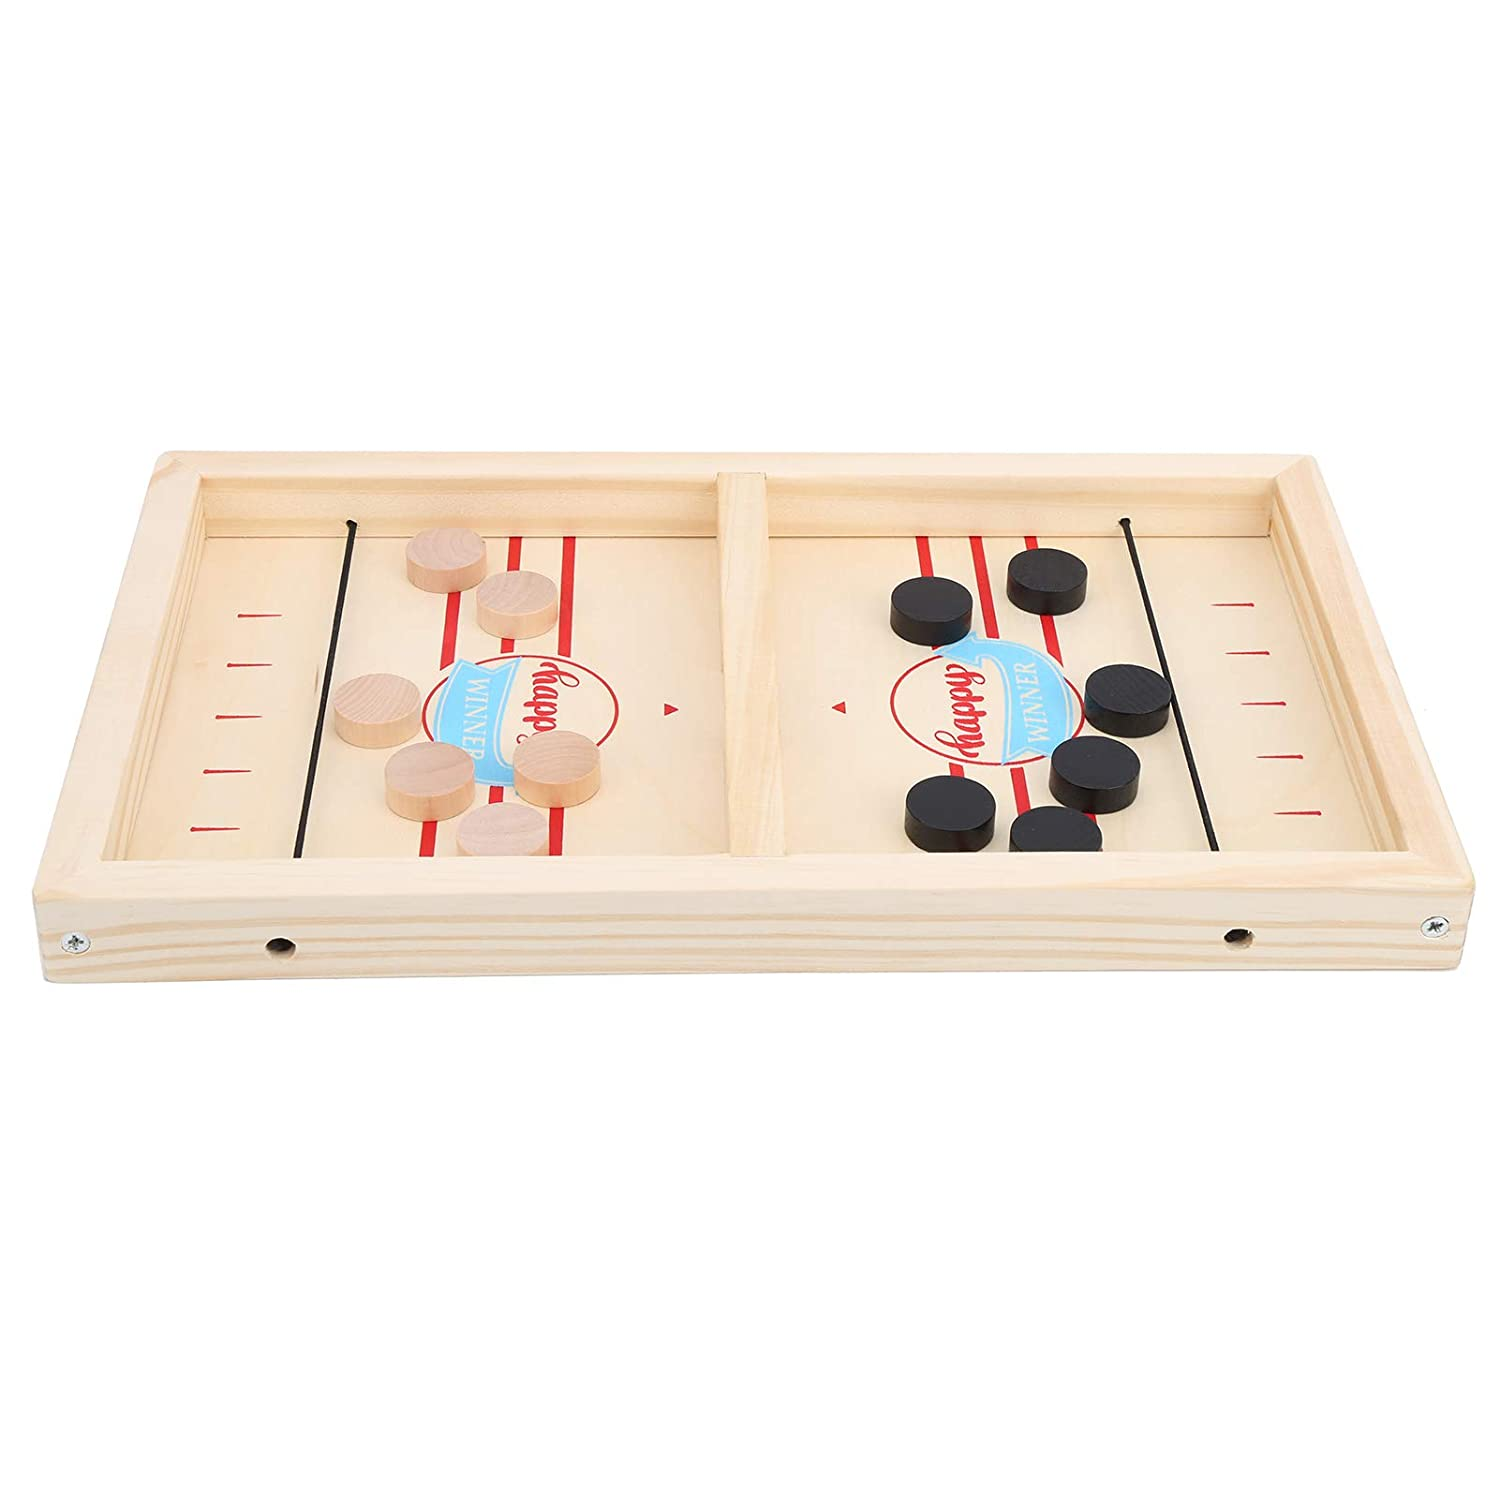 Toys Winner Board Games Wooden New life Sling Children Super sale period limited Puck for Smal Game